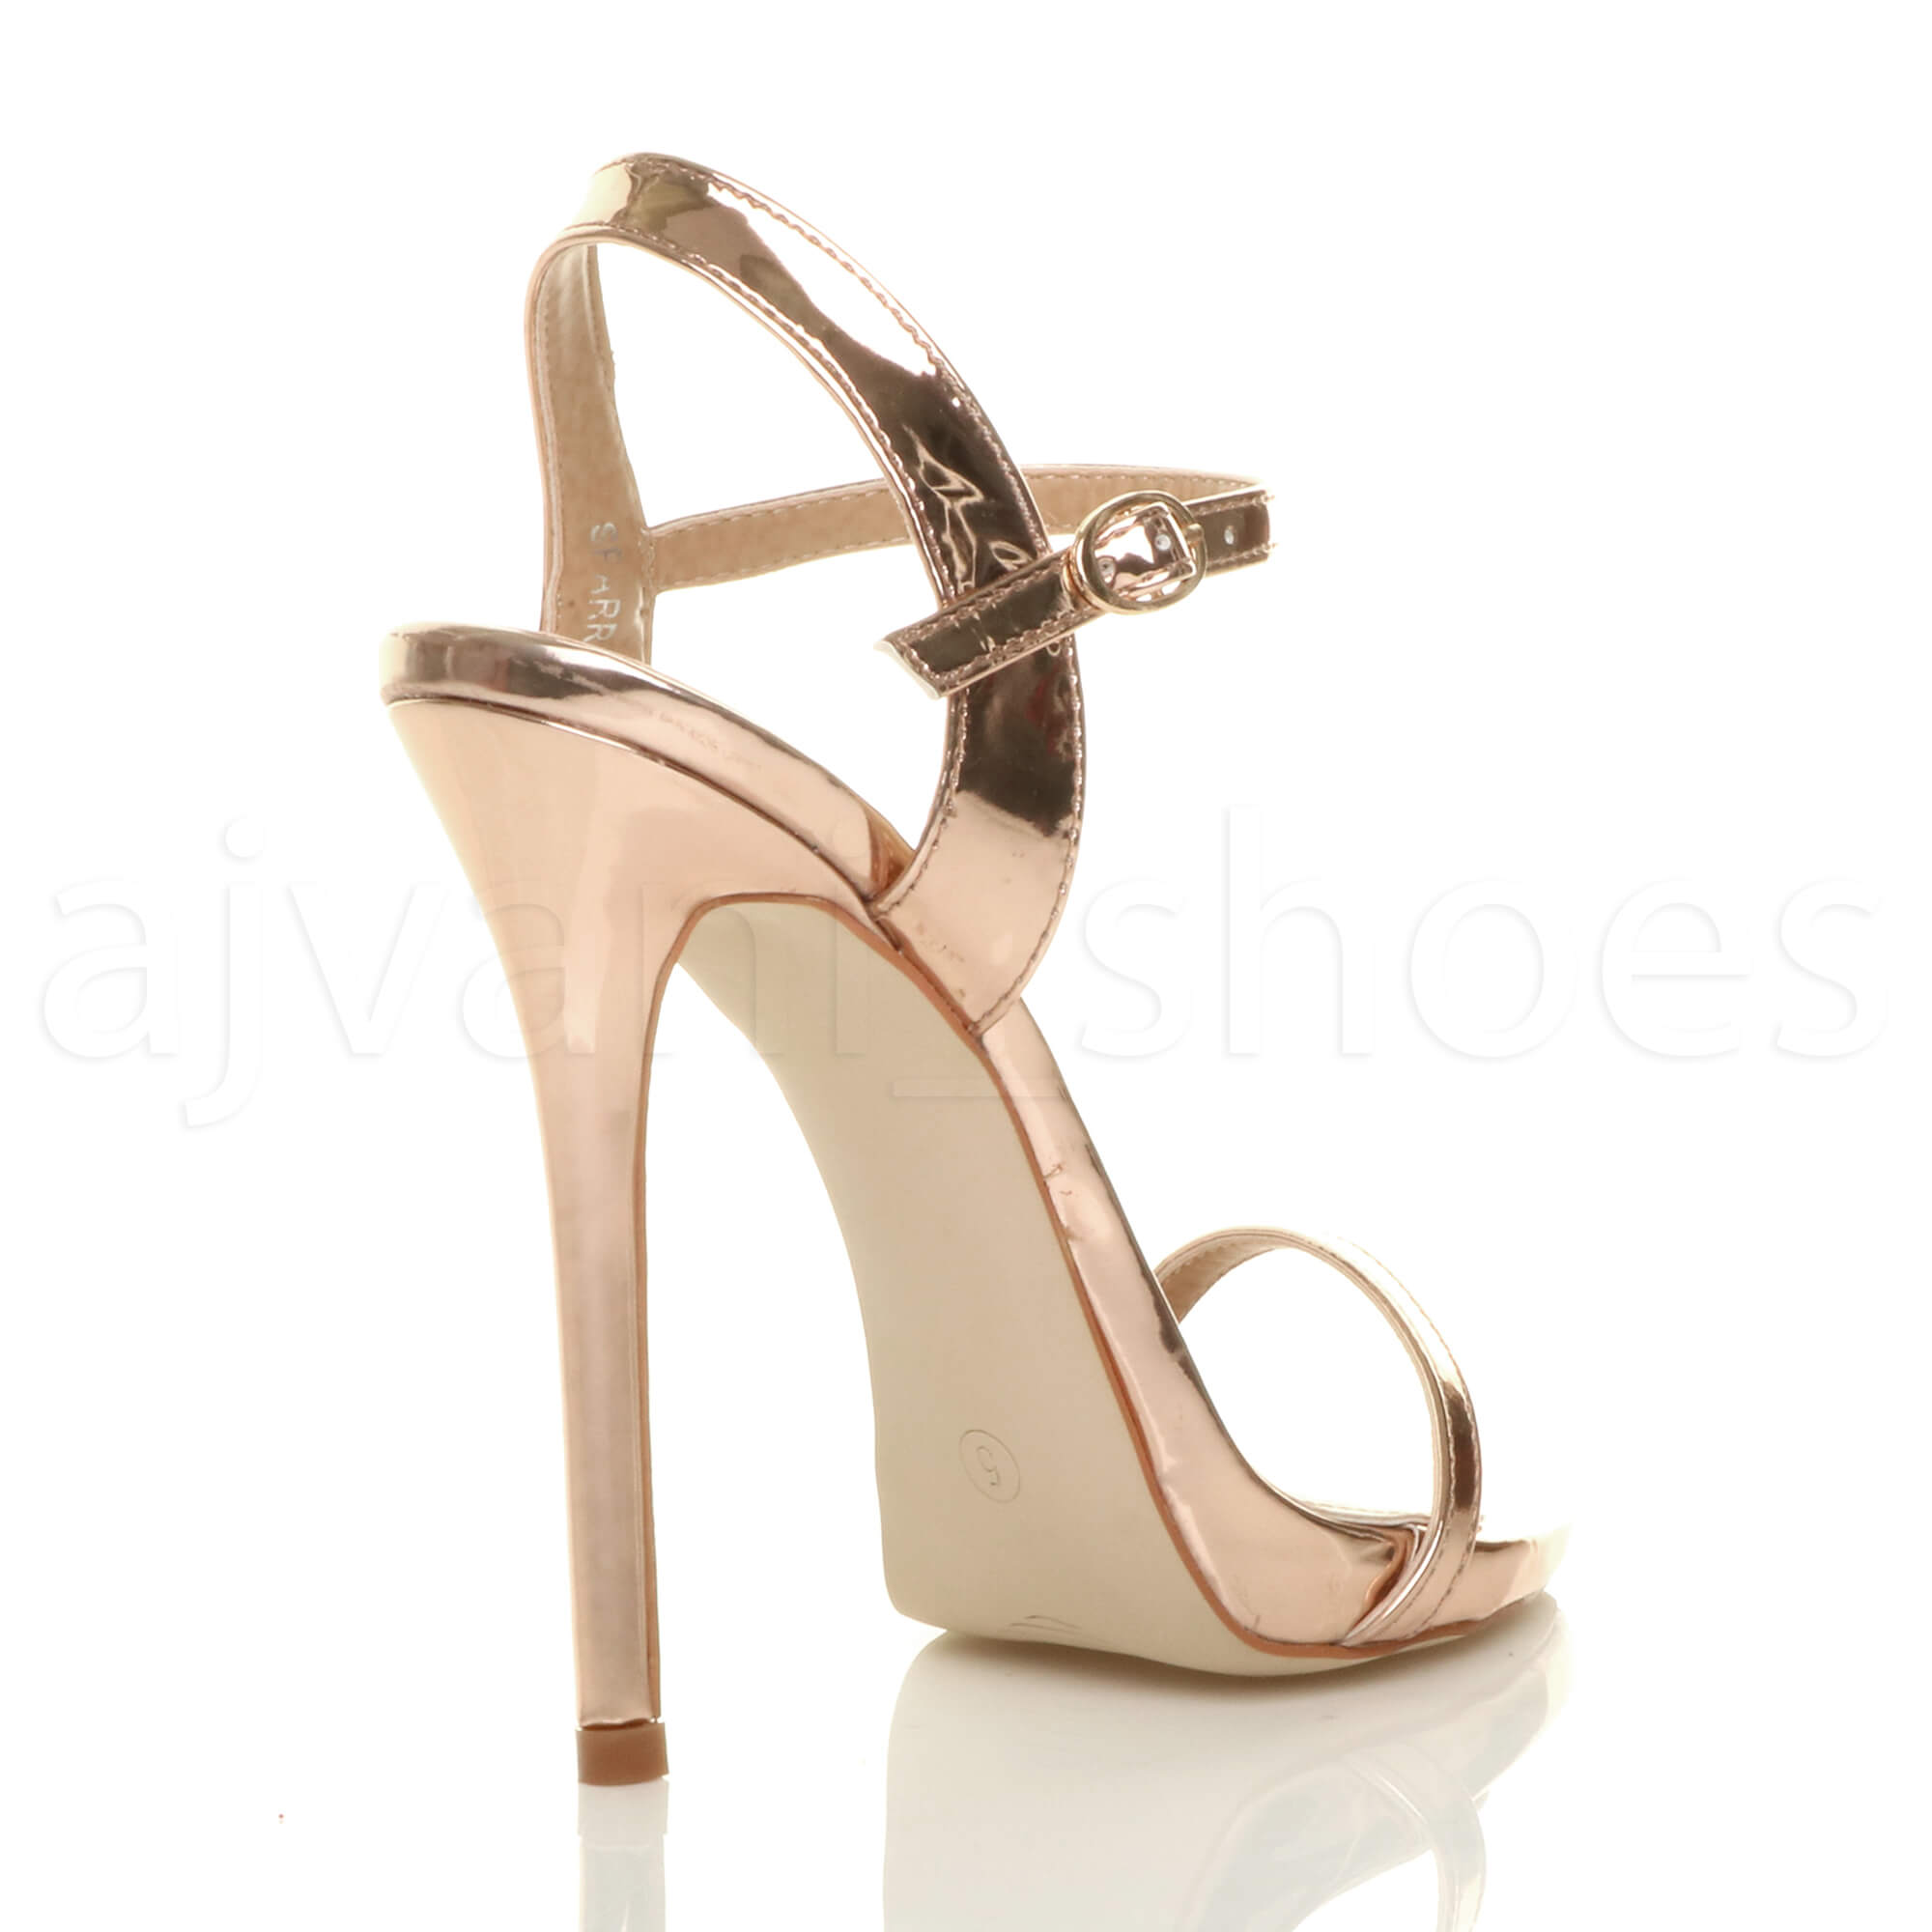 WOMENS-LADIES-VERY-HIGH-HEEL-BUCKLE-STRAPPY-METALLIC-BARELY-THERE-SANDALS-SIZE